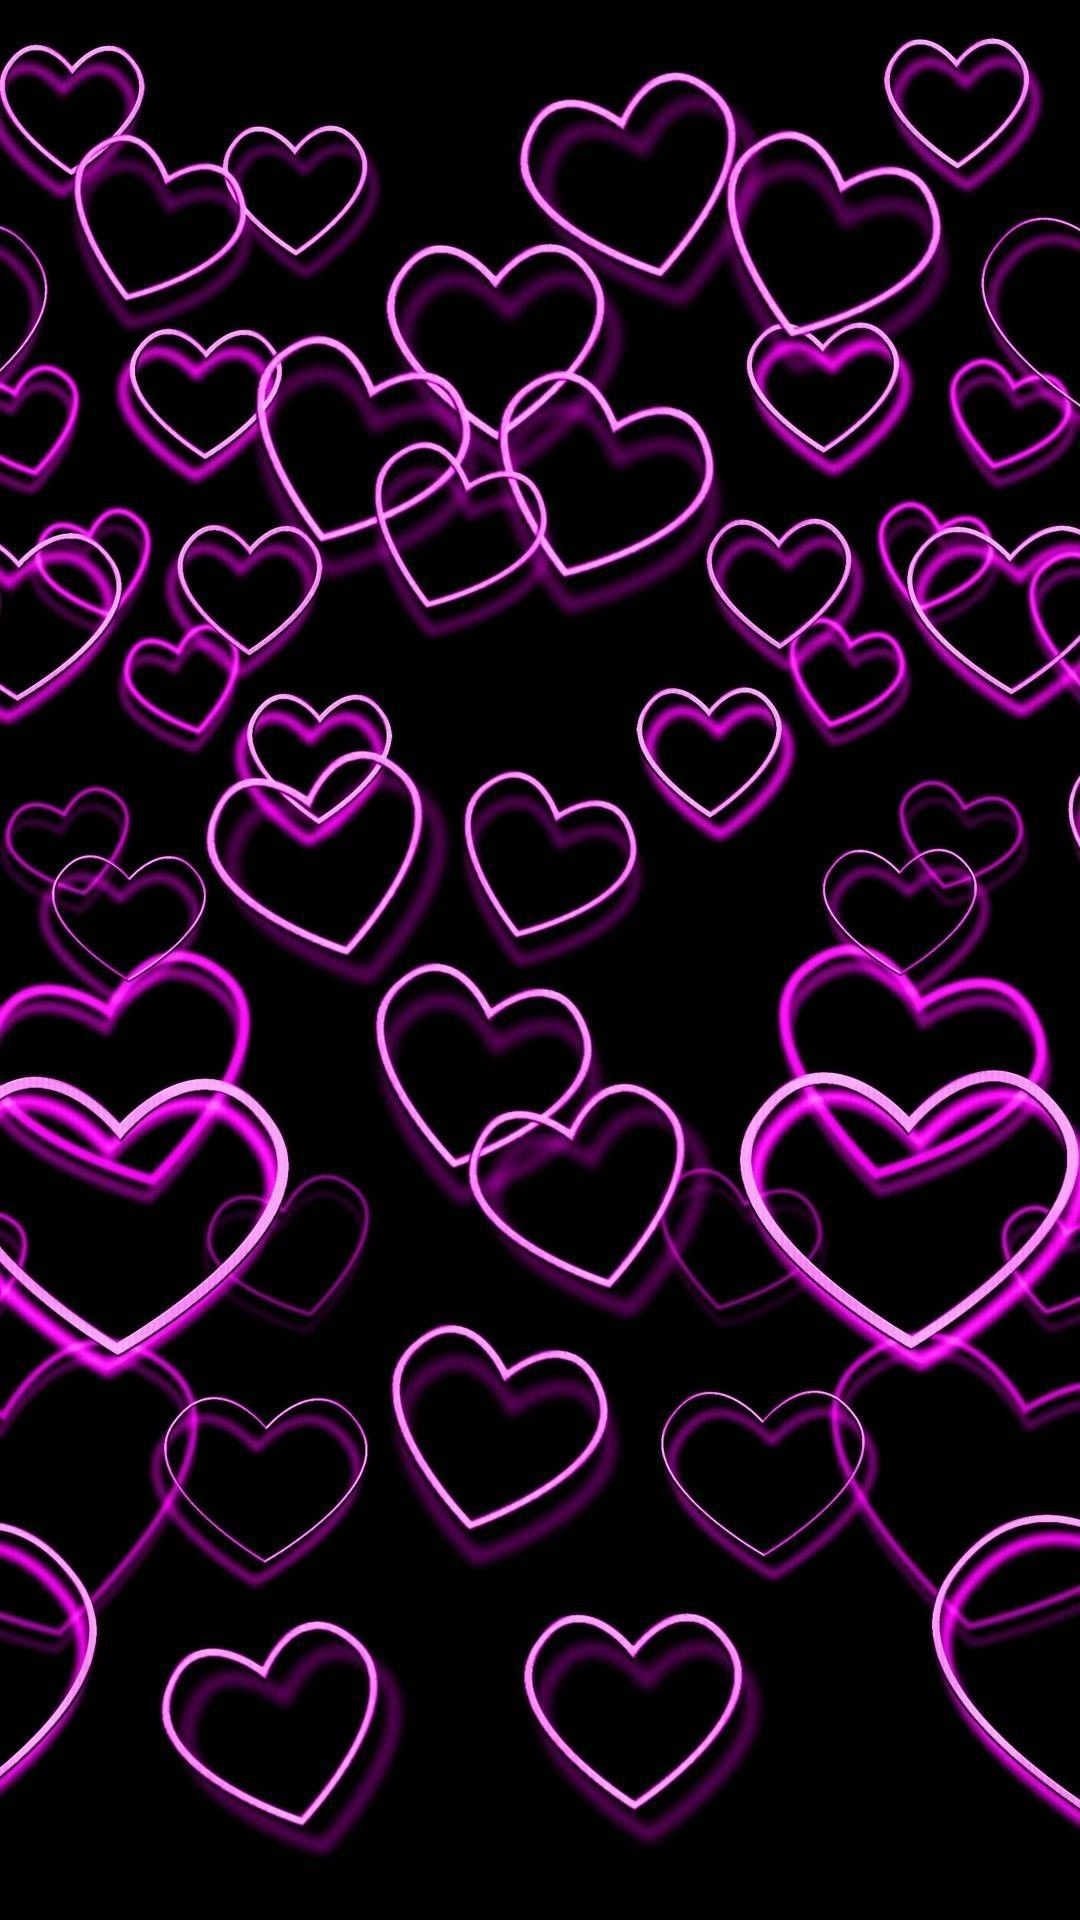 Pin By Queens On Pink Black Heart Iphone Wallpaper Heart